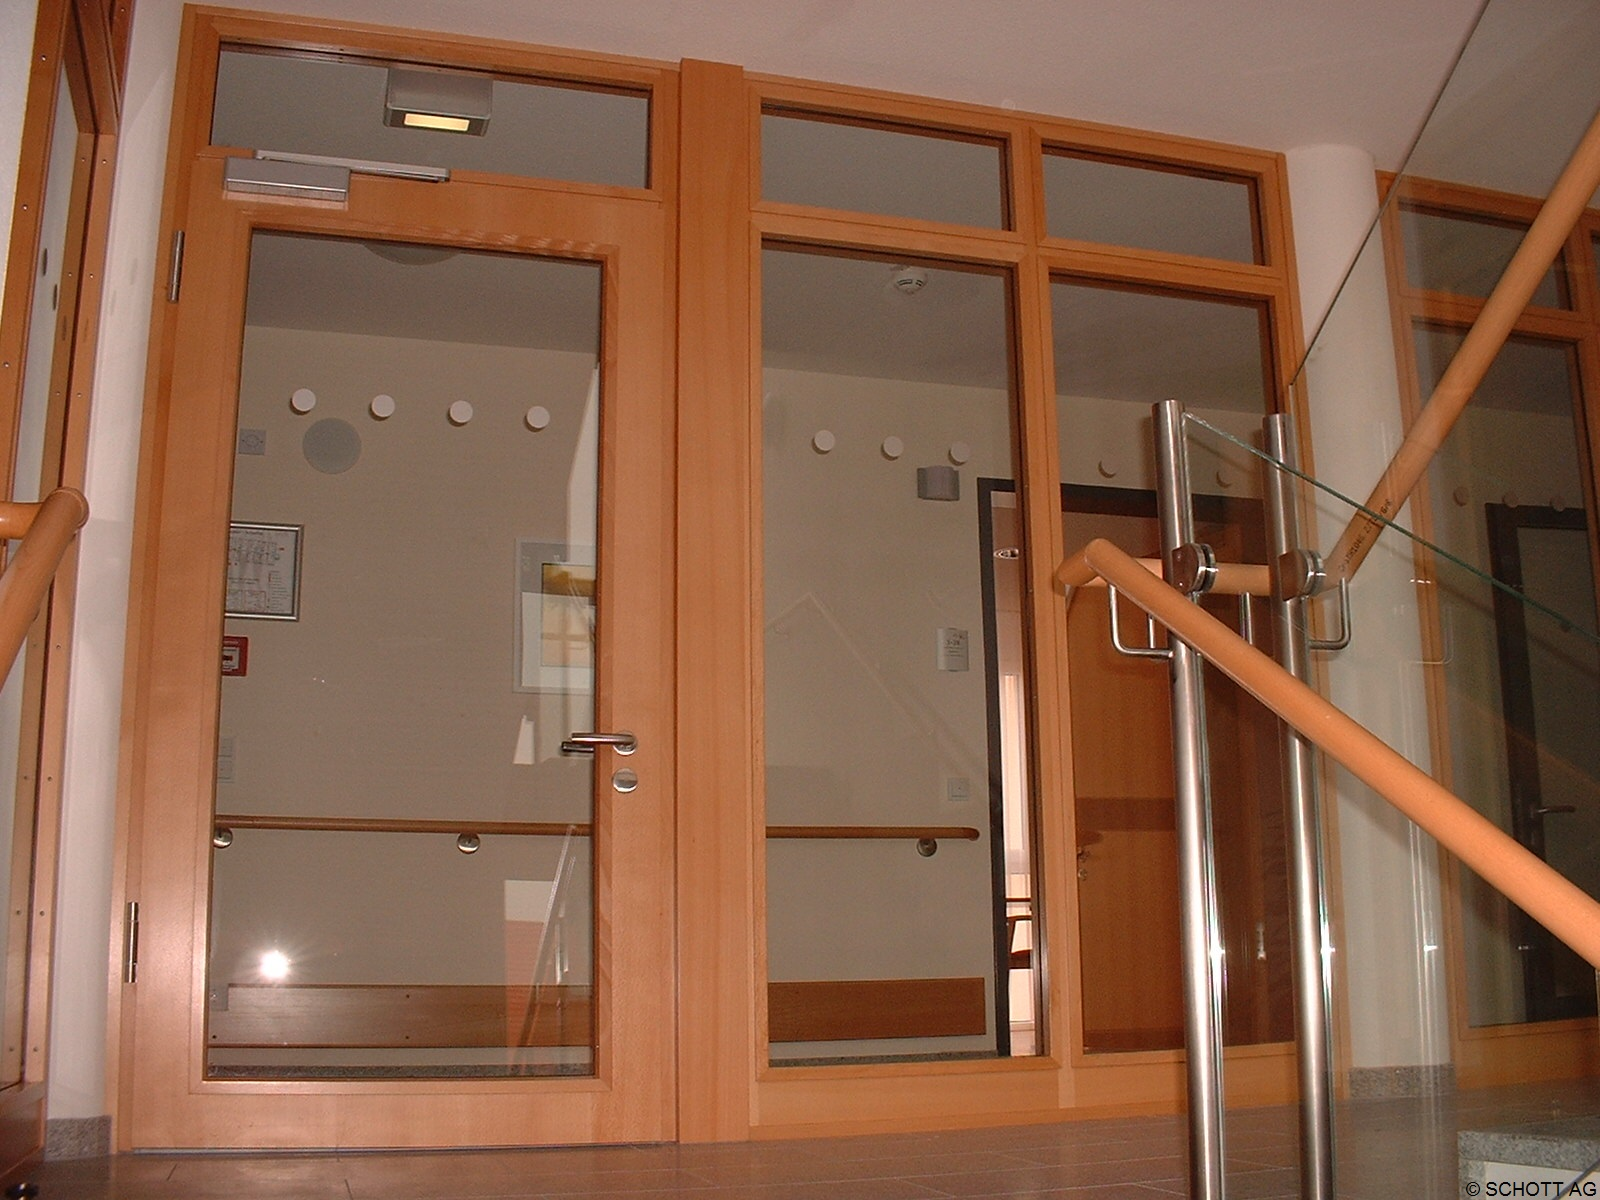 Schott Fire Resistant Glass Approval For Use In Premier